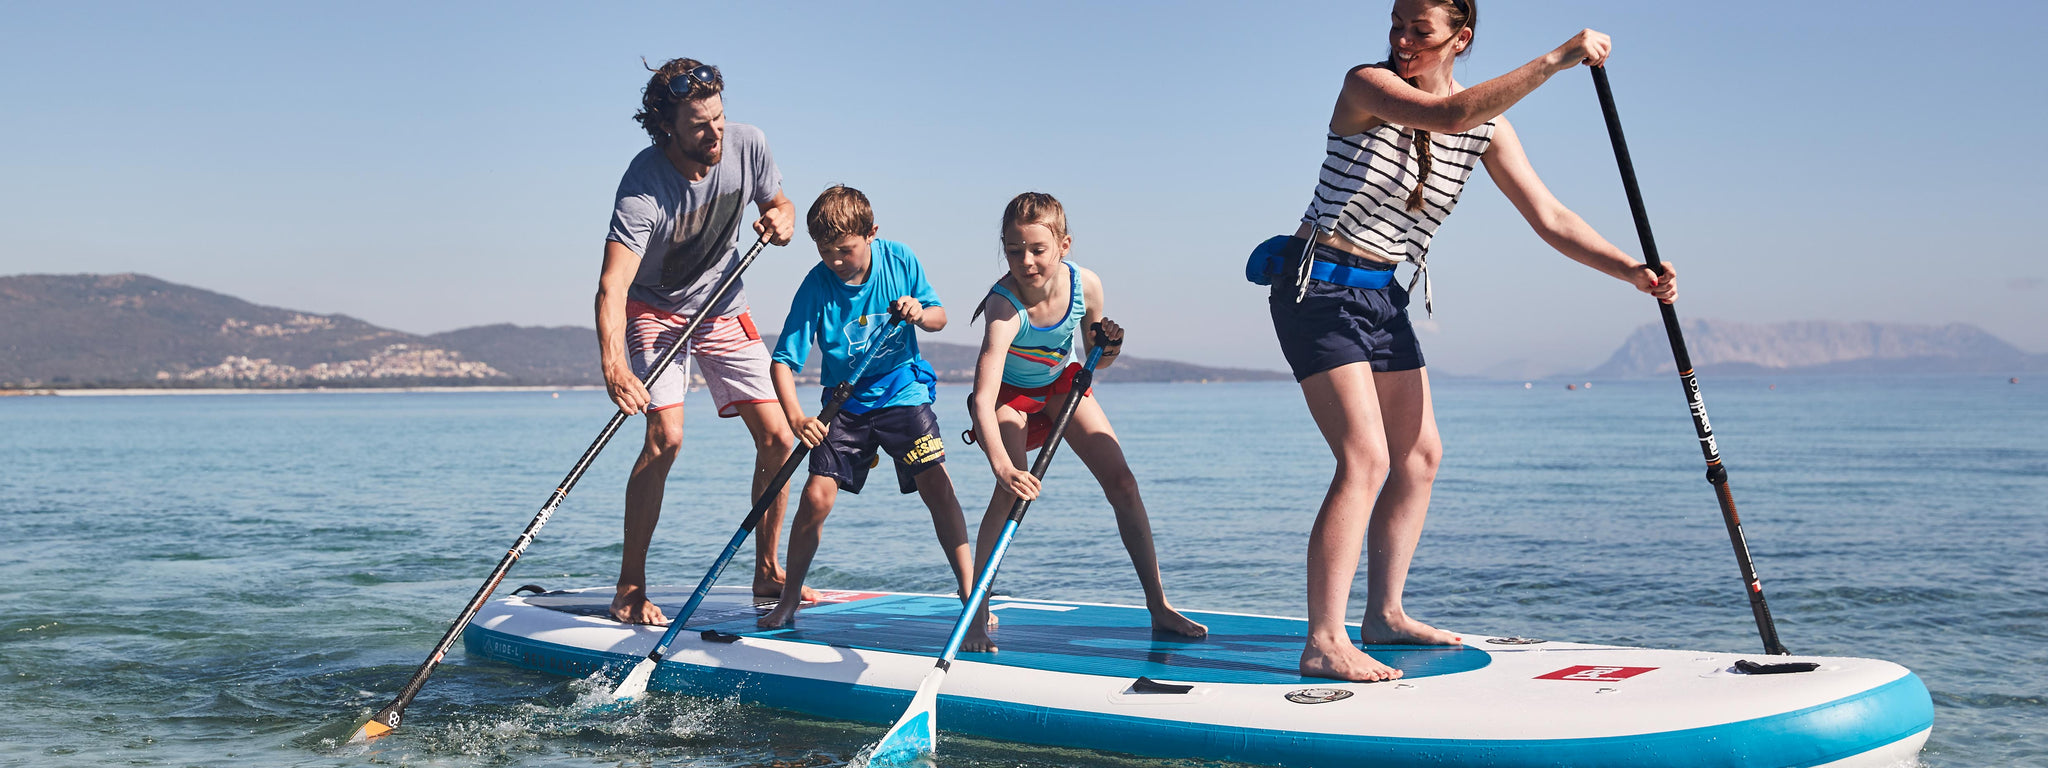 Specialty SUP Boards For Fishing, Windsurfing and Group Paddling